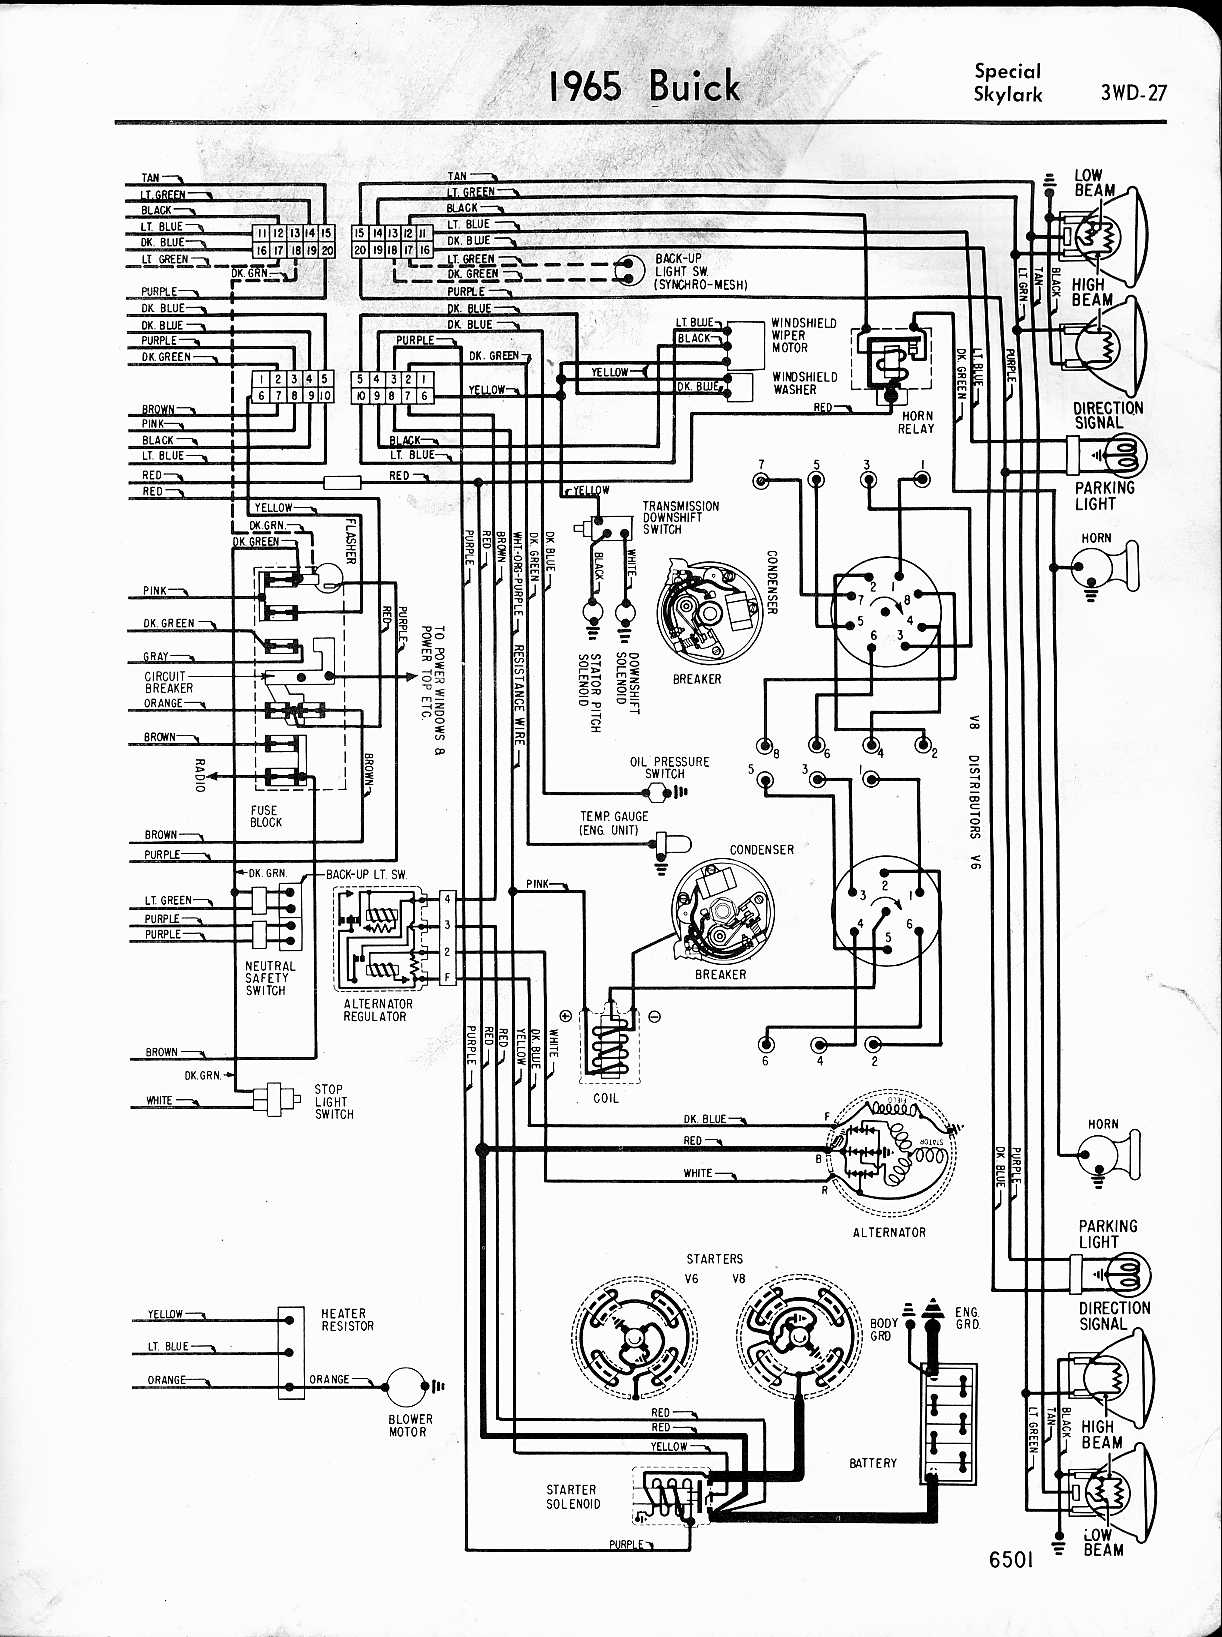 Wrg 7792 2003 Buick Rendezvous Fuse Panel Diagram Wiring Schematic